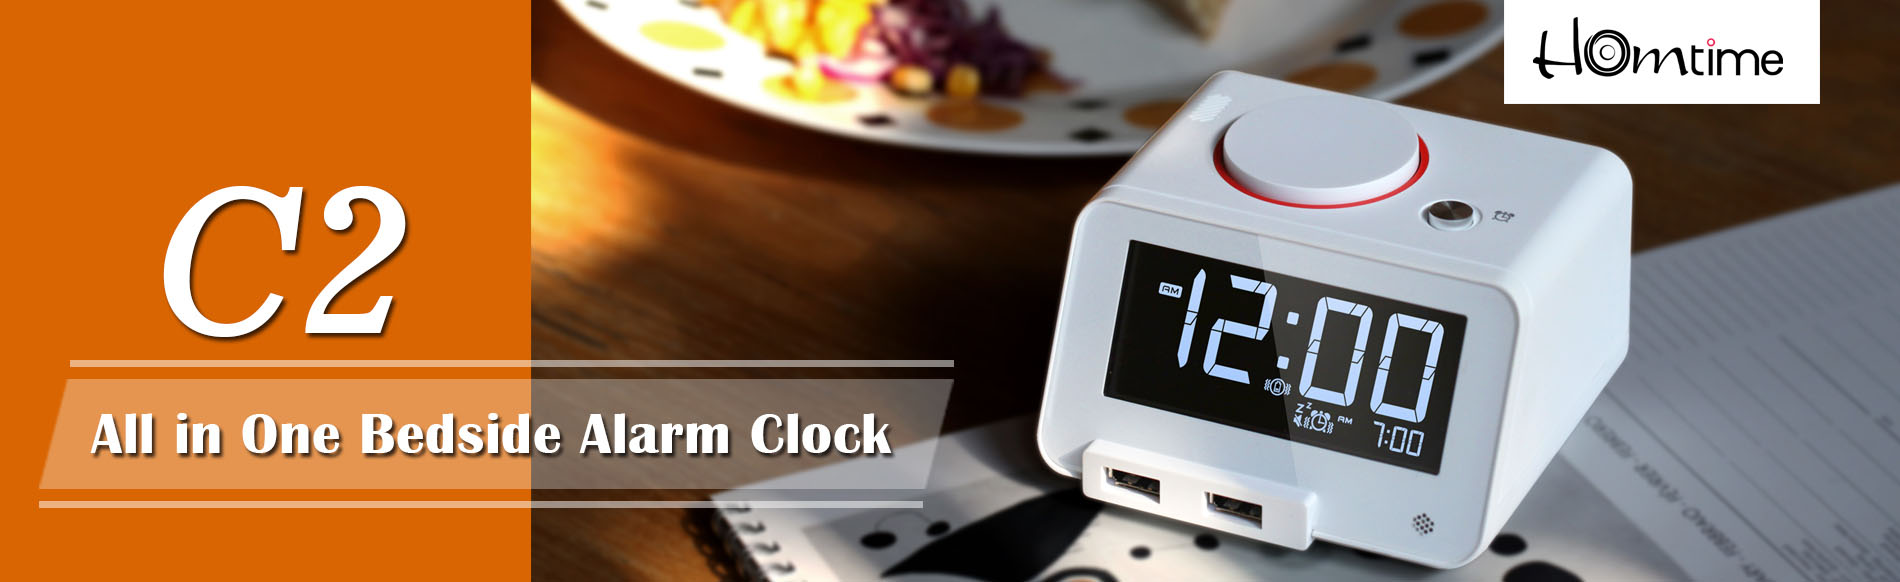 Alarm clock with USB charger   alarm clock with bluetooth speaker